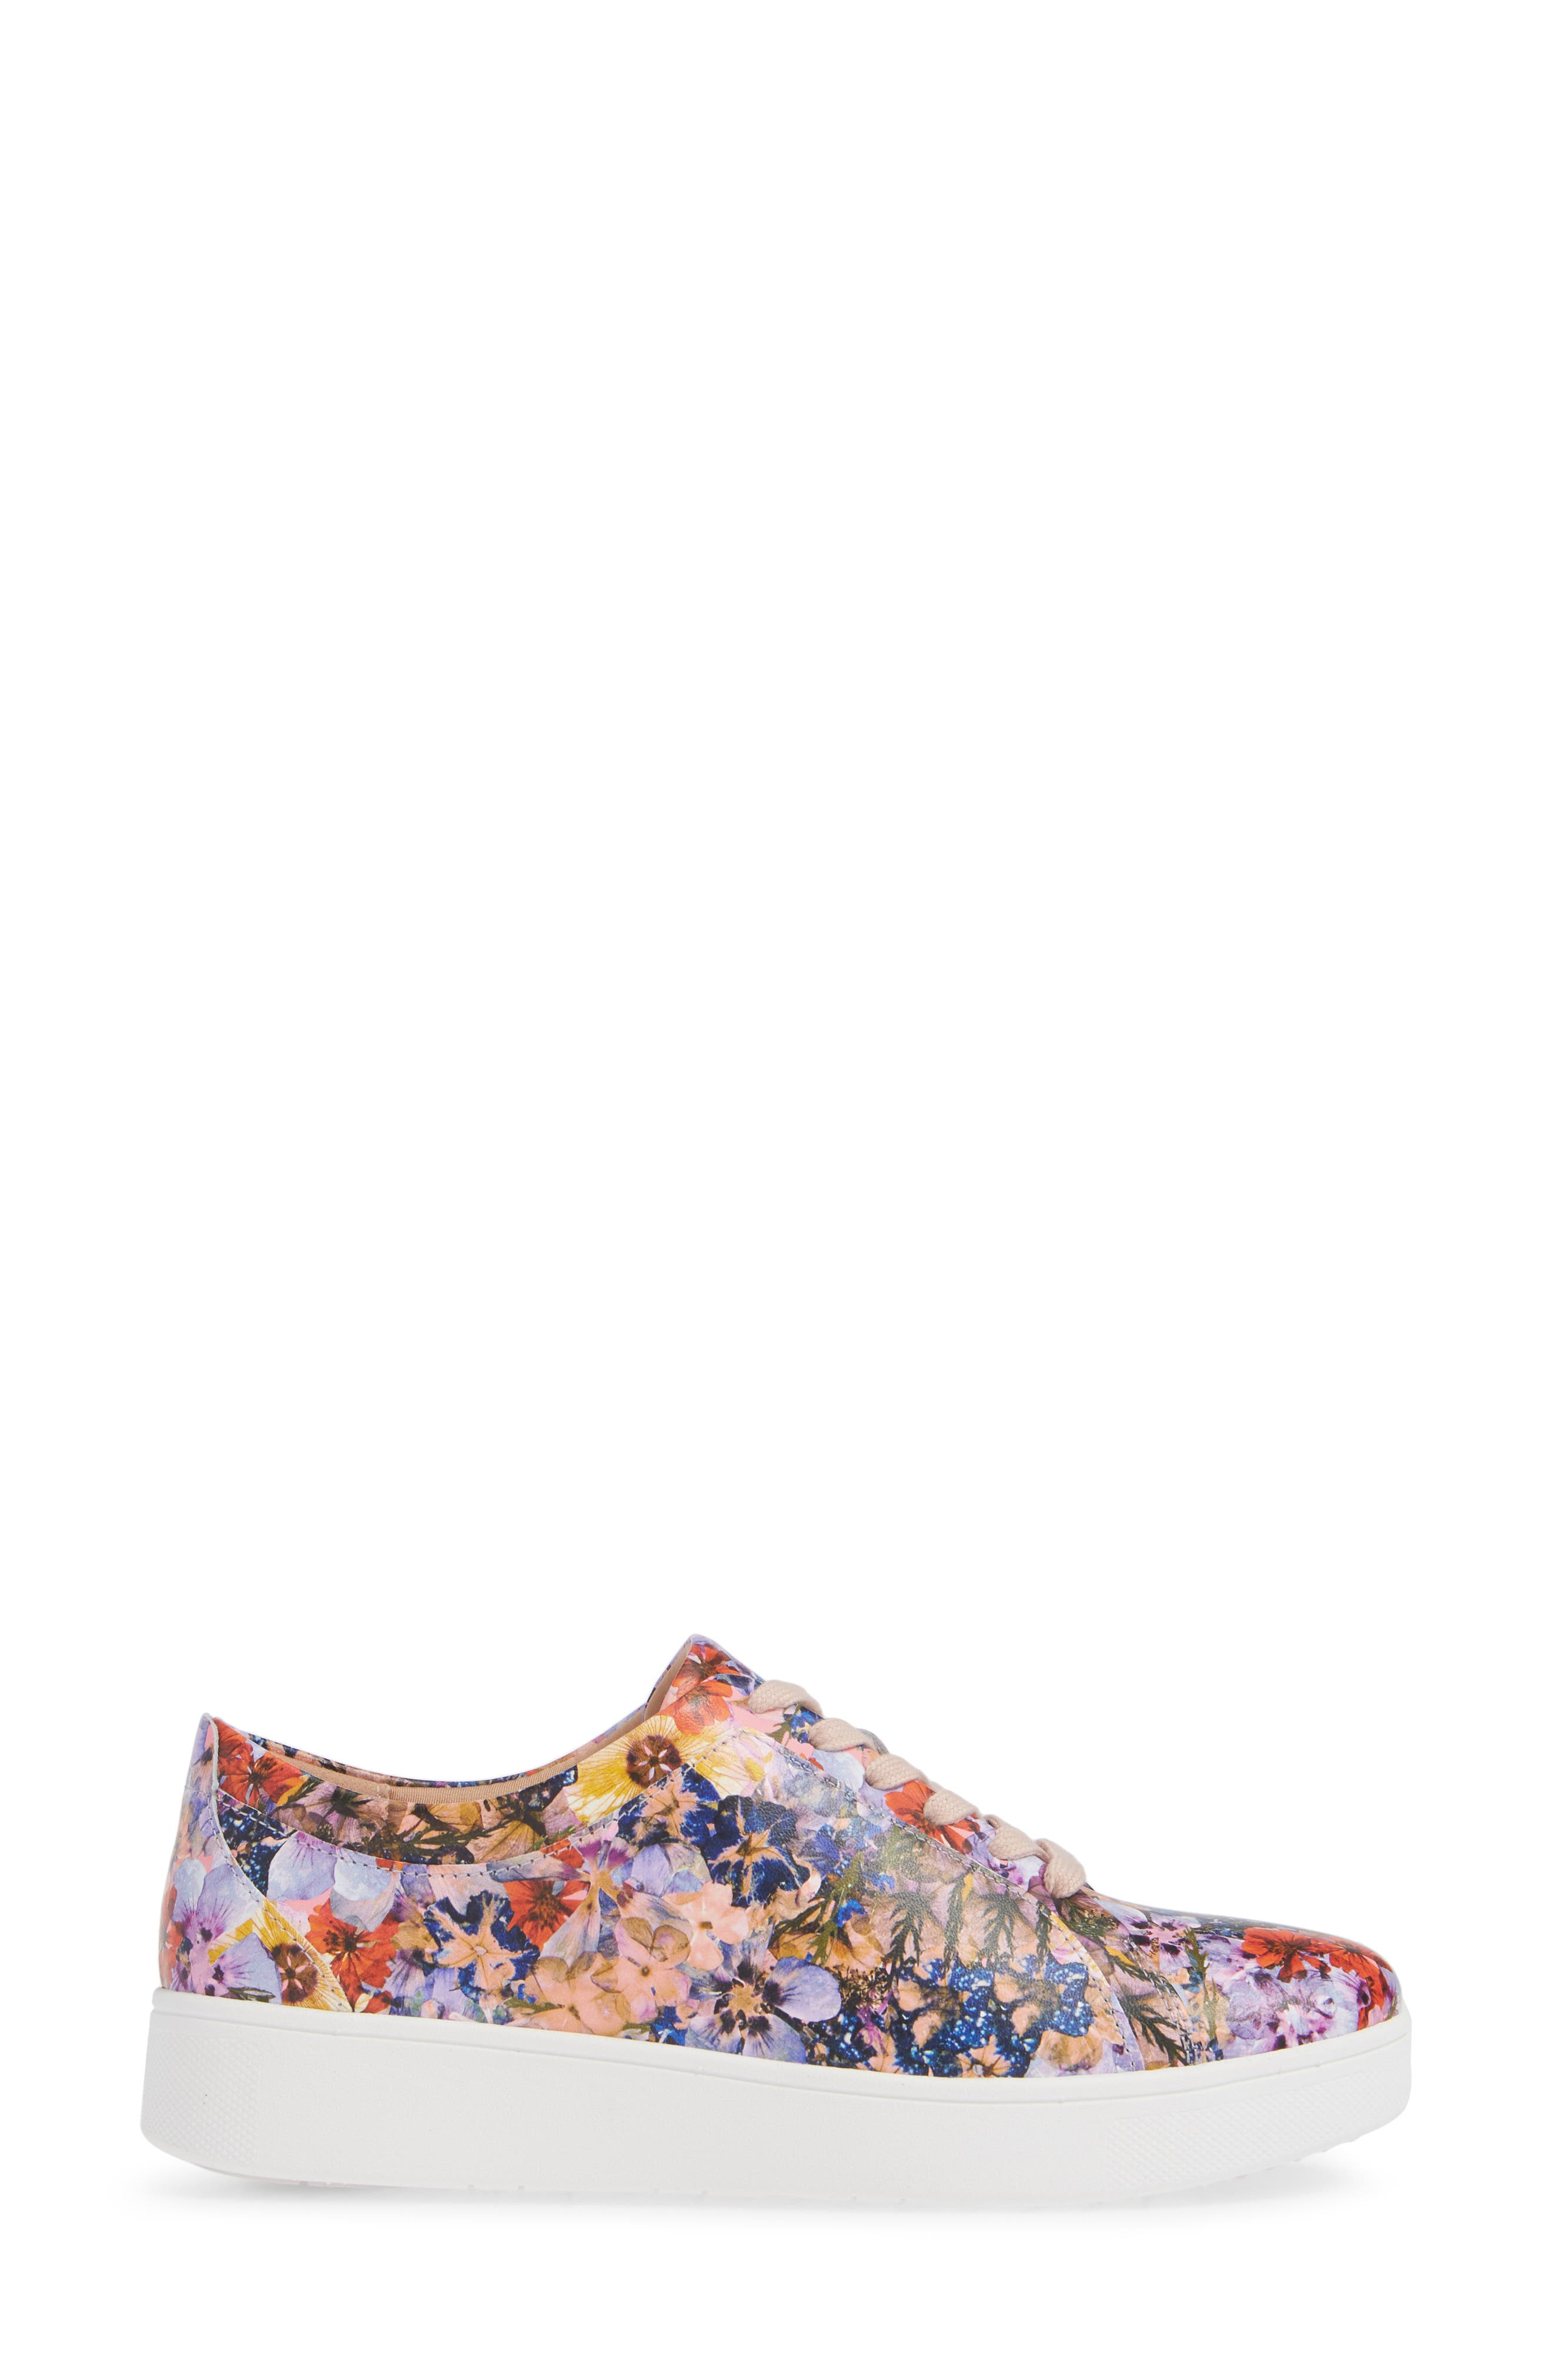 FITFLOP, Rally Flower Crush Leather Sneaker, Alternate thumbnail 3, color, OYSTER PINK FLOWER